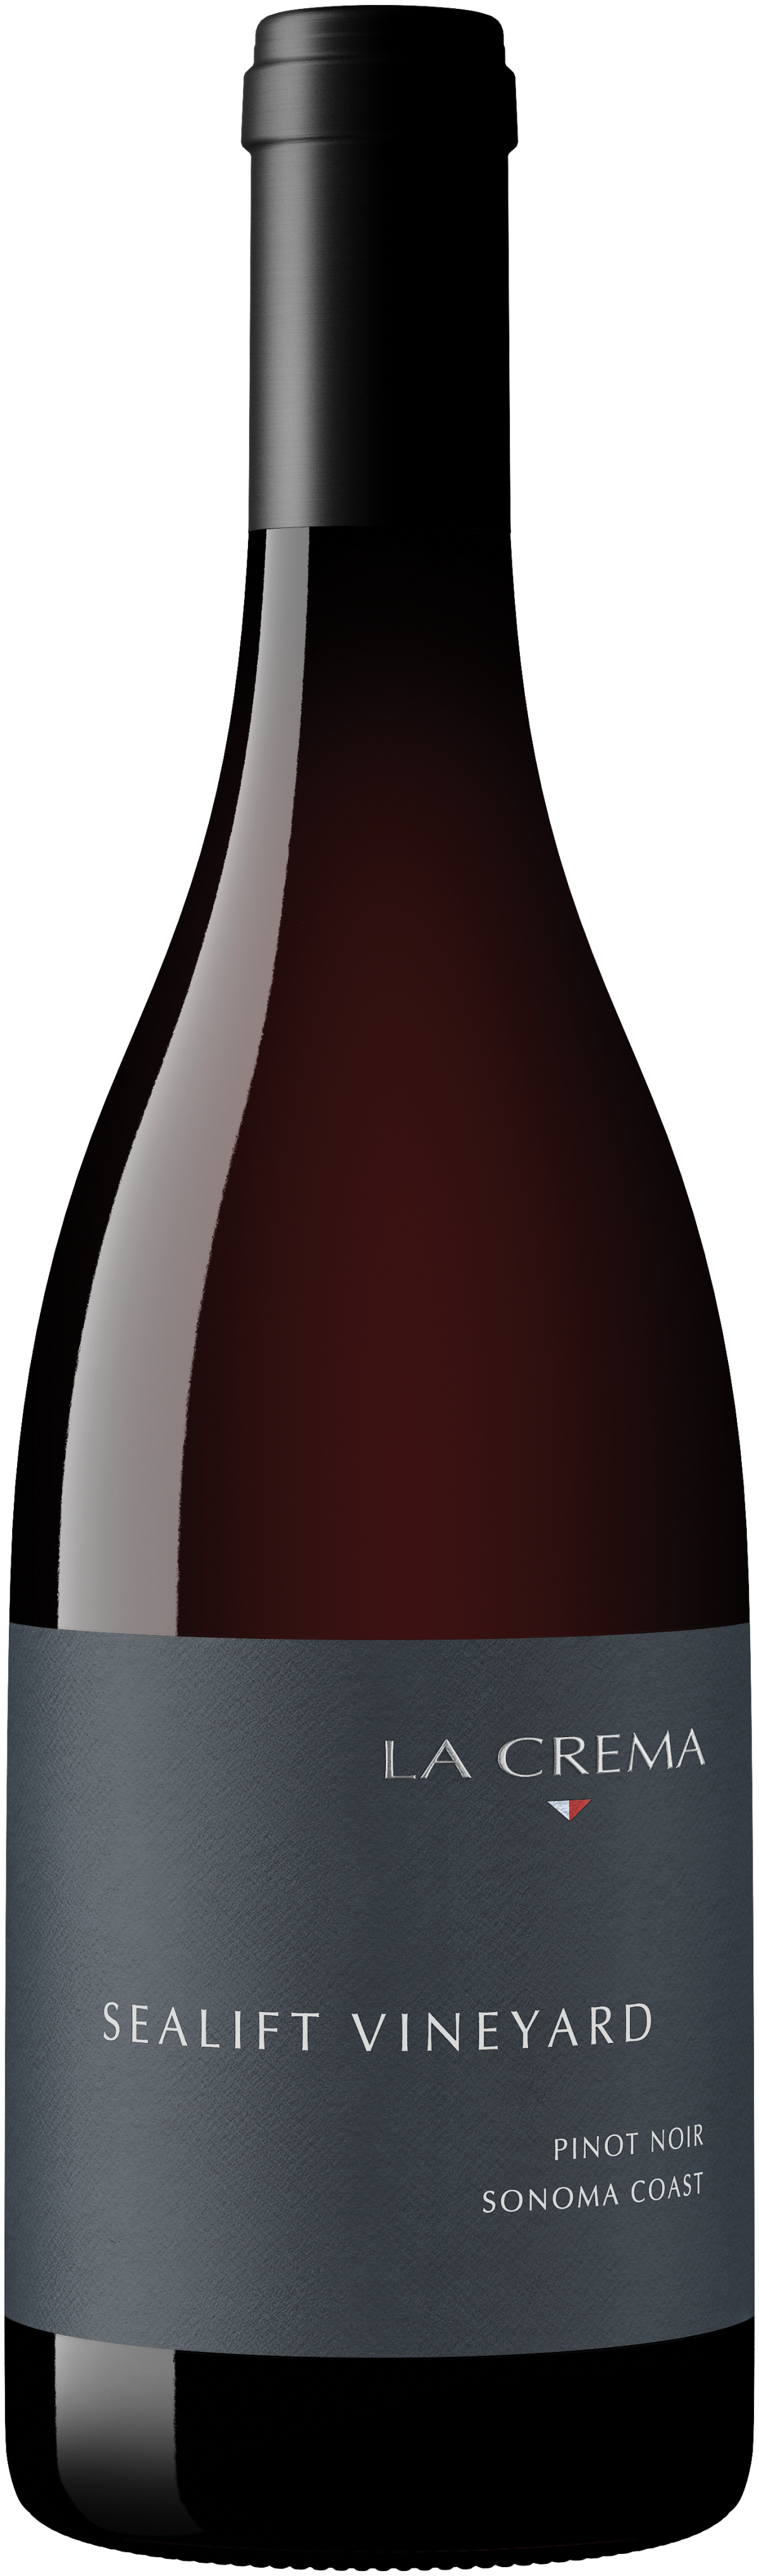 LaCrema-PinotNoir-SealiftVineyard-NV-HD.png